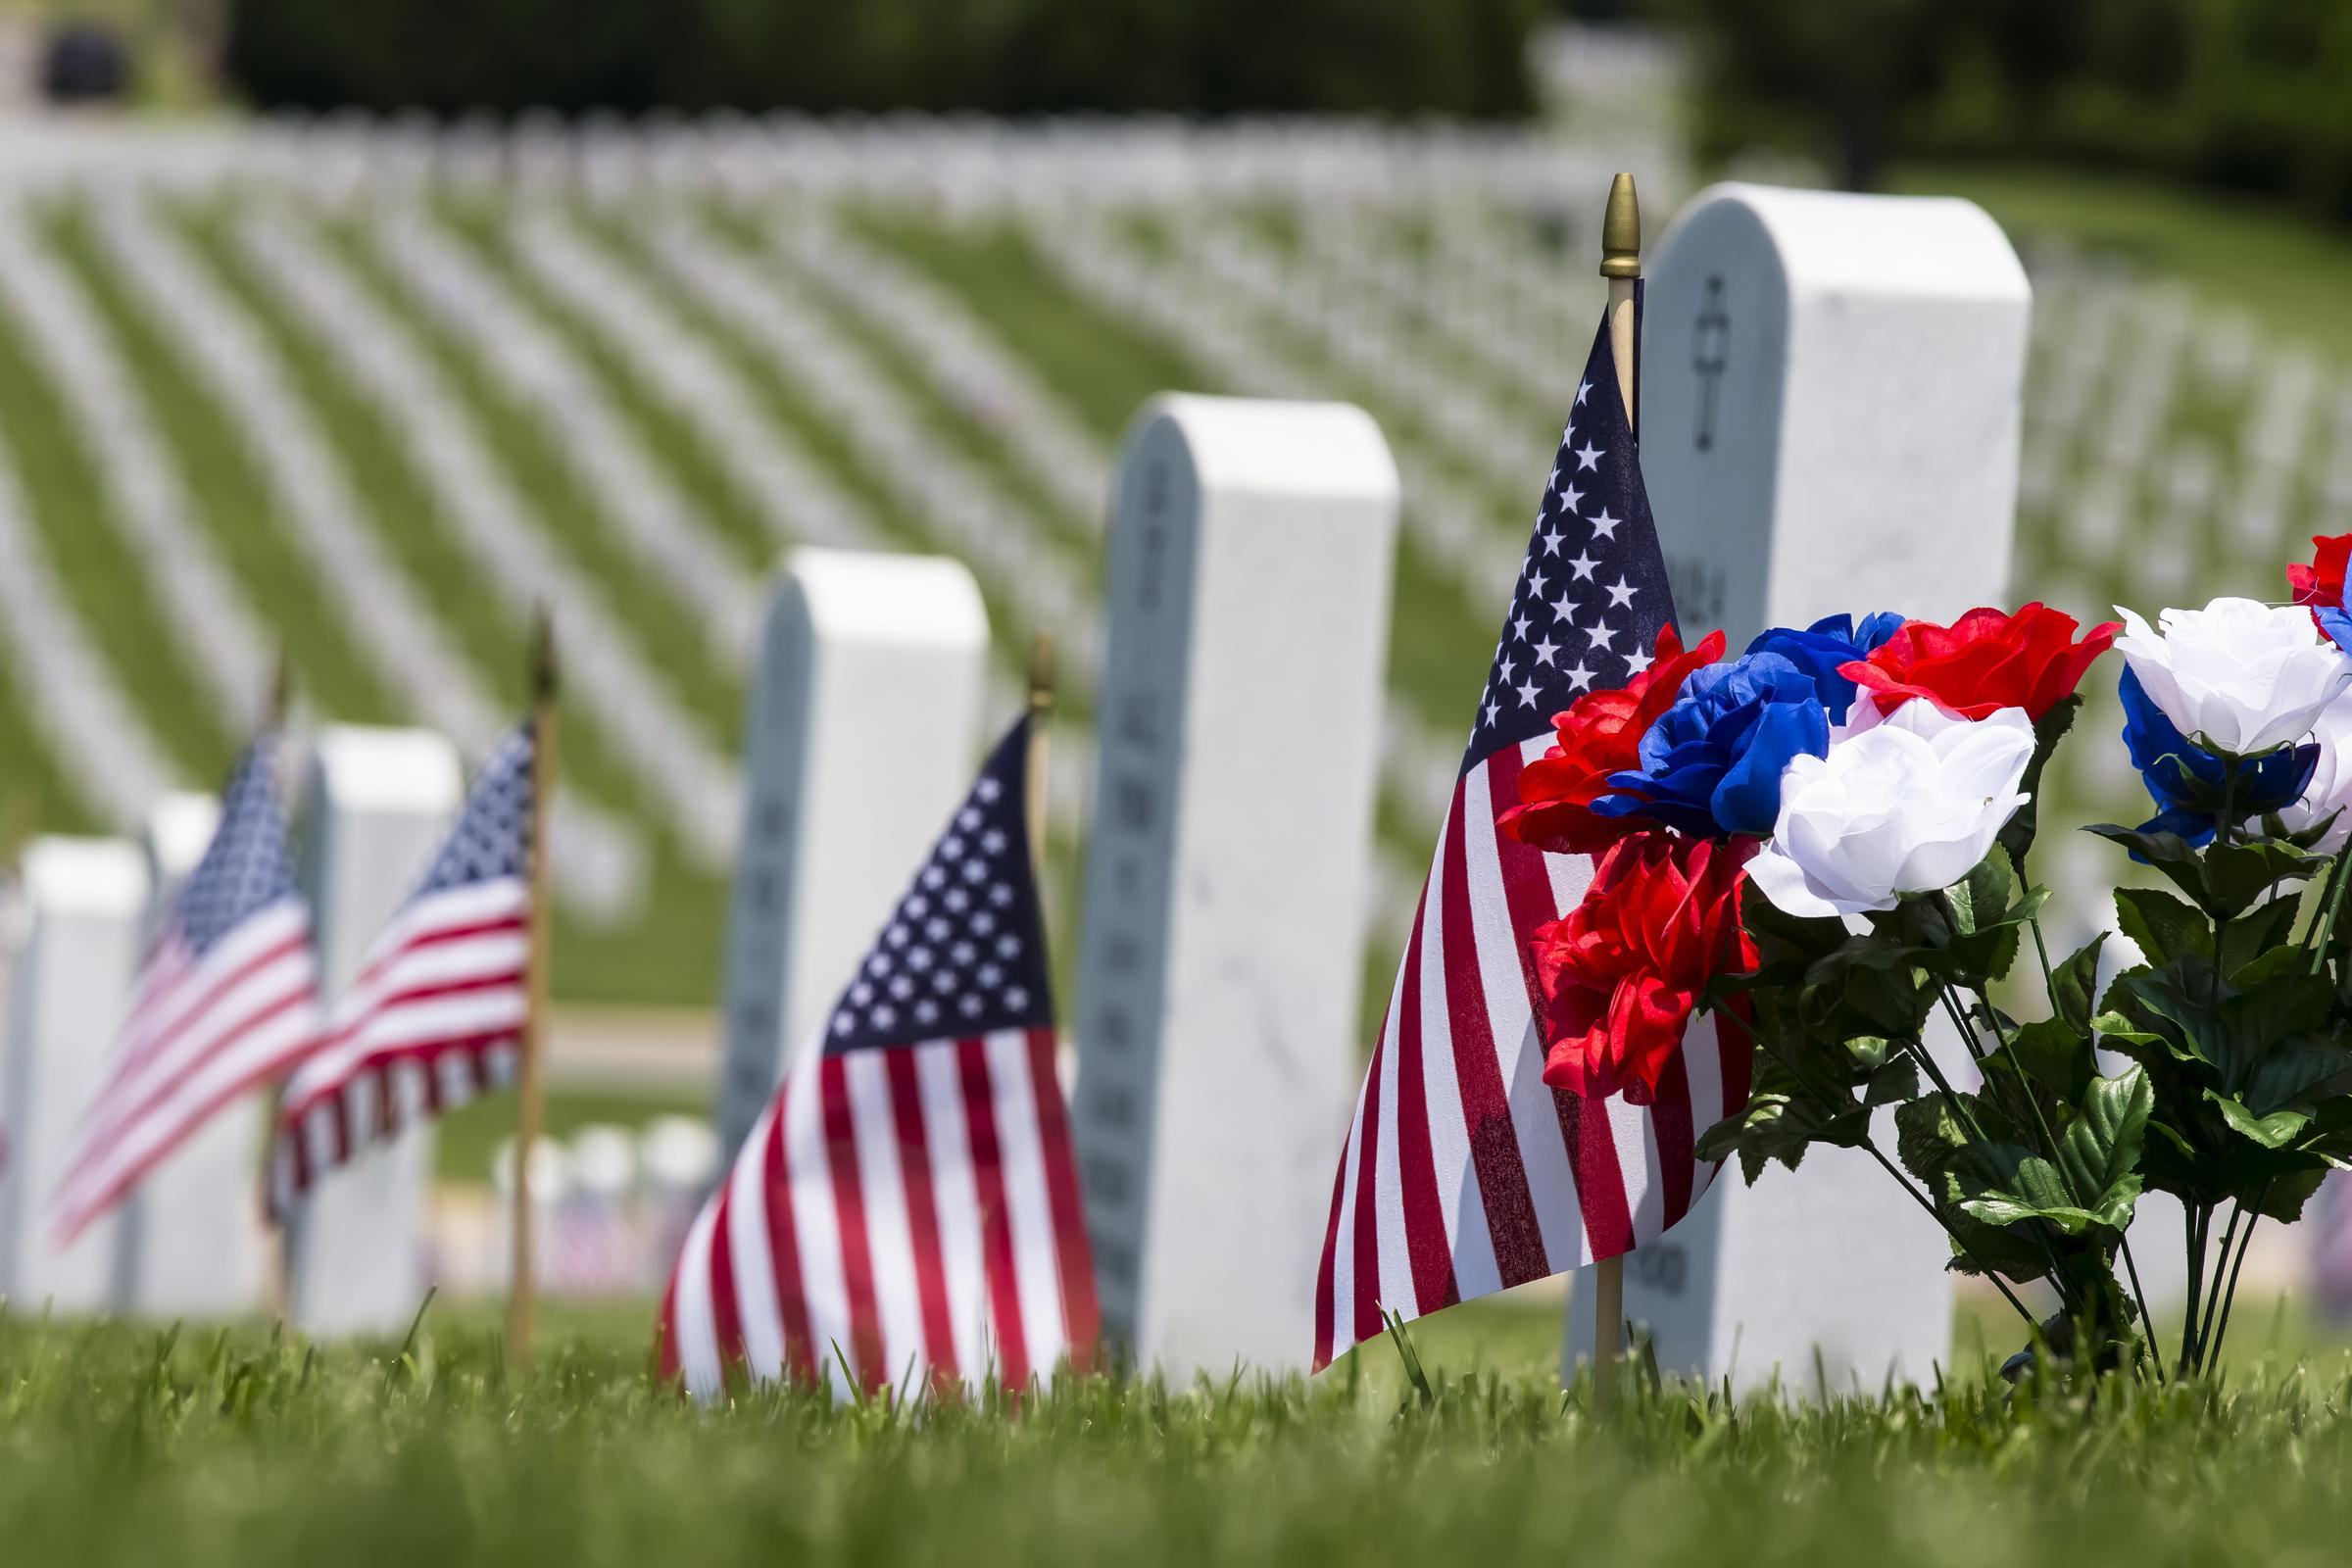 Fullsize Of Memorial Day Image